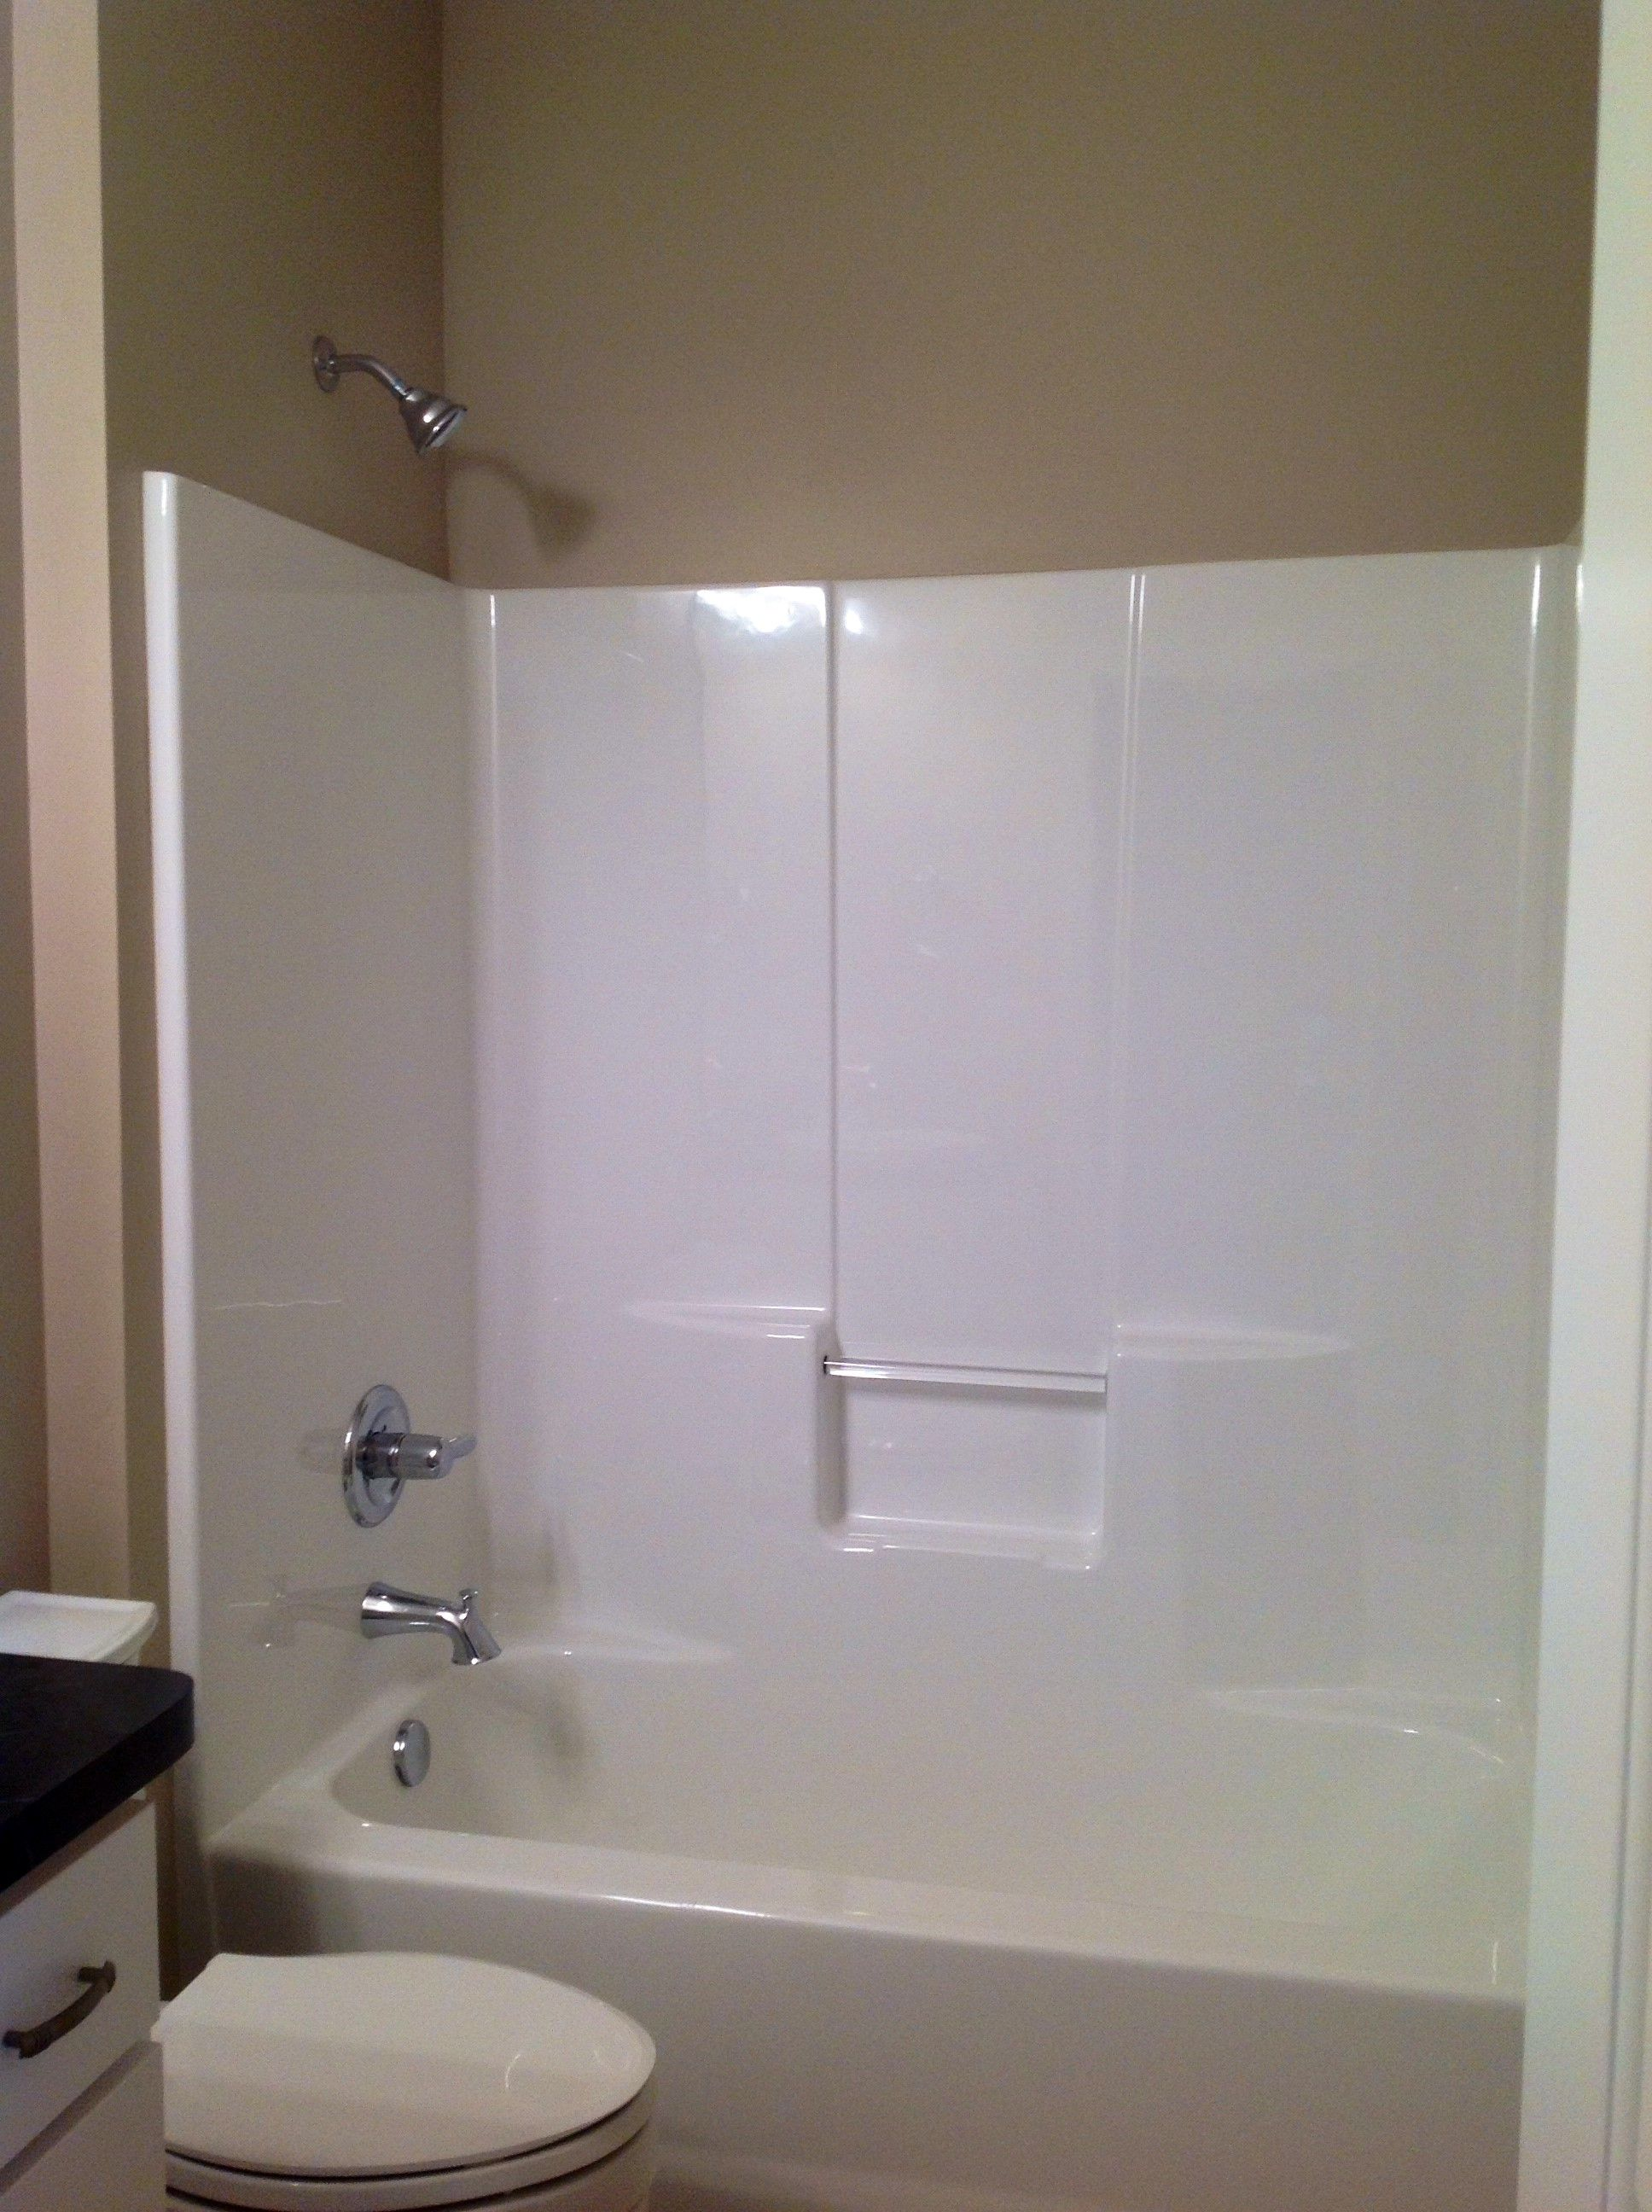 One-Piece Tub/Shower combo | Our Work | Pinterest | Tub shower combo ...